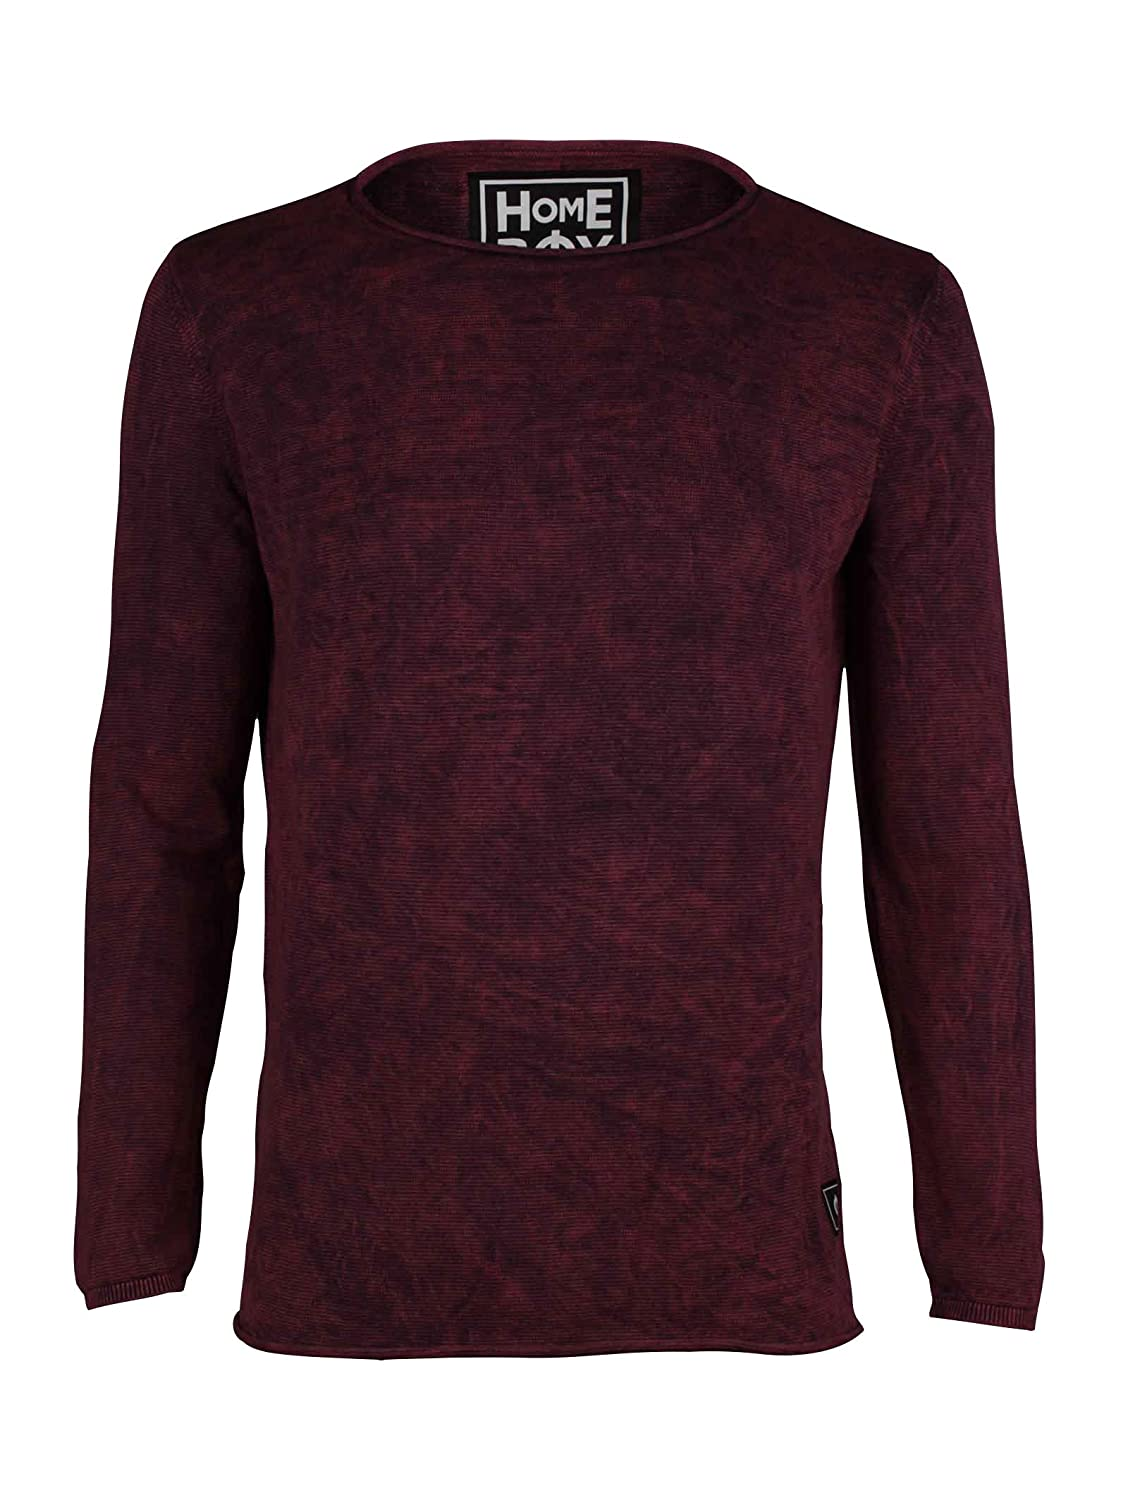 Homeboy Loud Couture Herren Pullover Stay Gold Knit Sweater 12-Hb-Ks-01-16-00